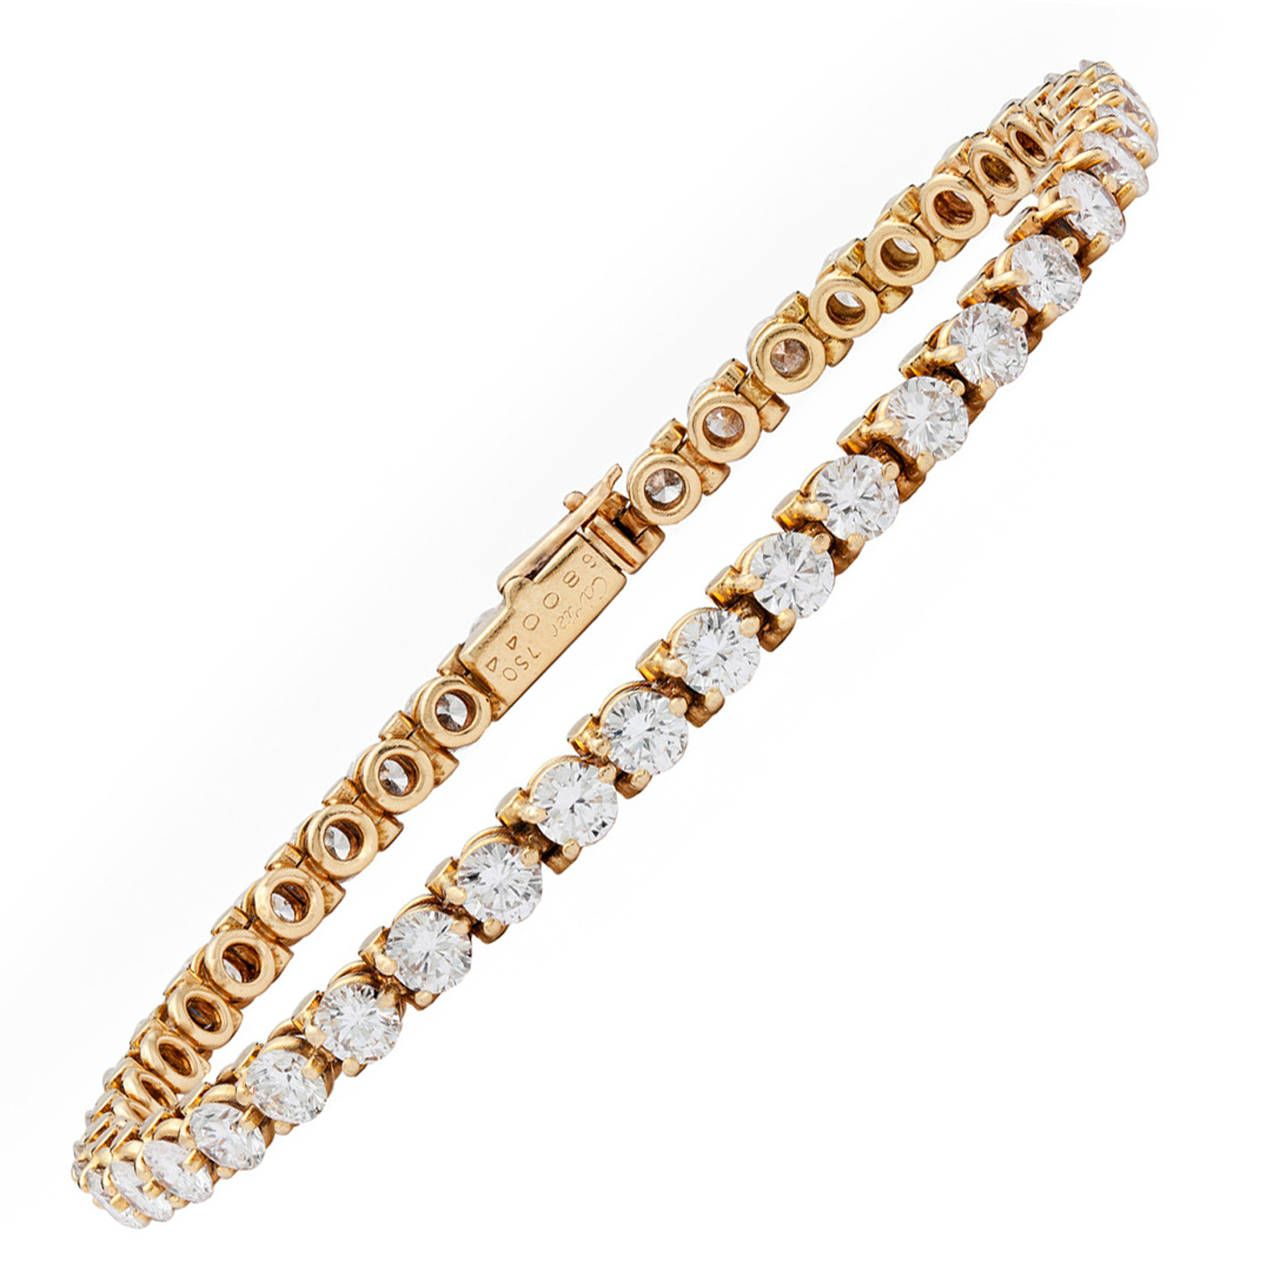 Cartier 6 30 Carat Diamond Gold Tennis Bracelet From A Unique Collection Of Vintage Bracelets